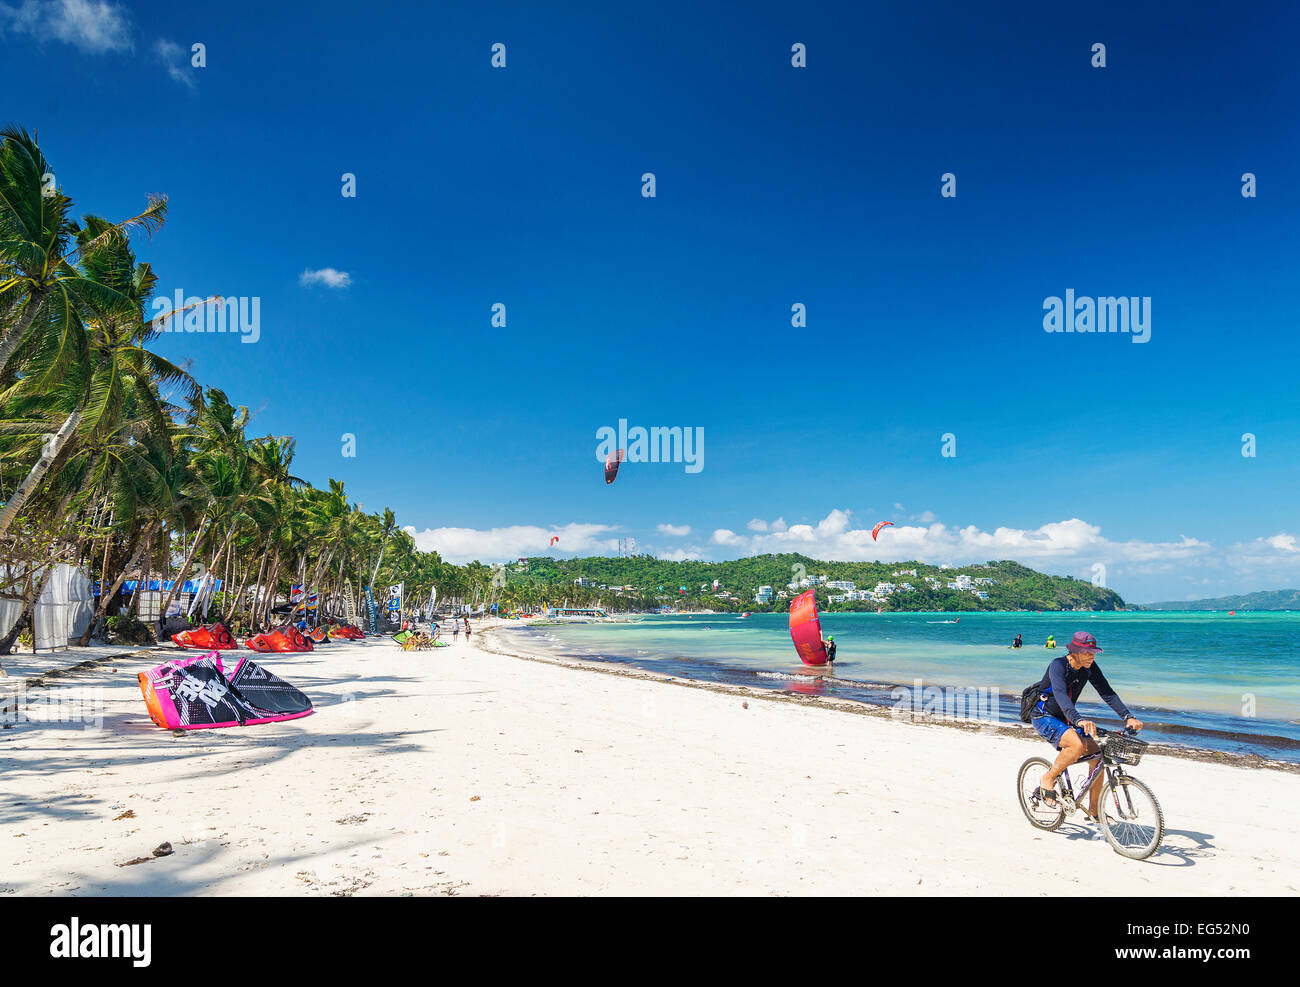 cycling and kitesurfing beach sports in boracay tropical island philippines - Stock Image